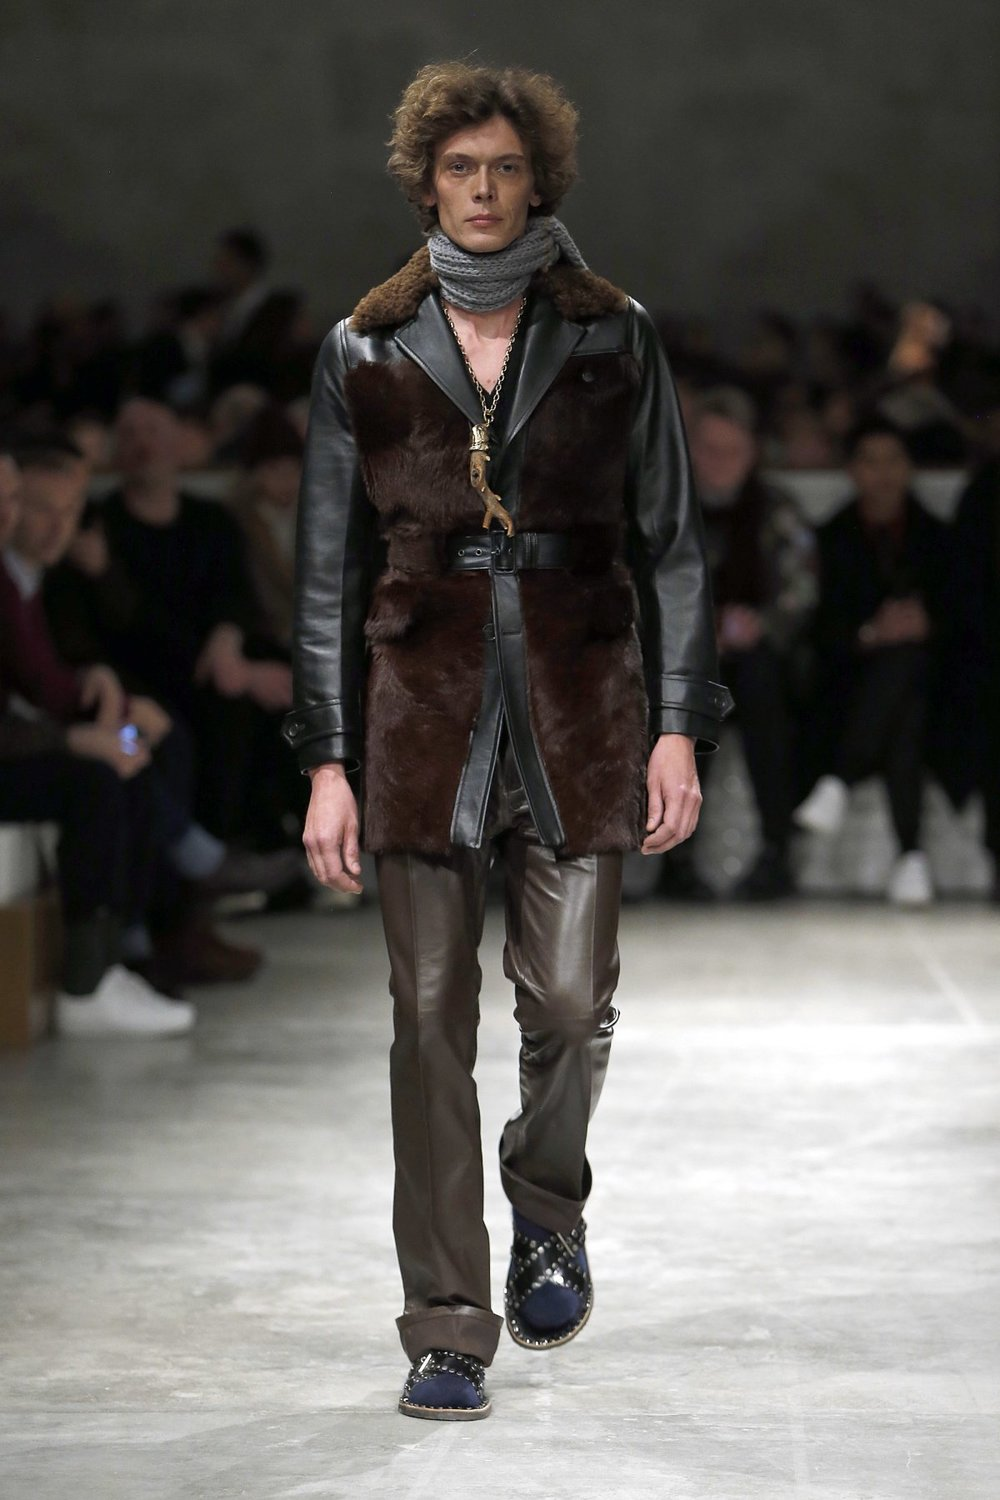 prada_look_13_2017_aw_mens.jpeg